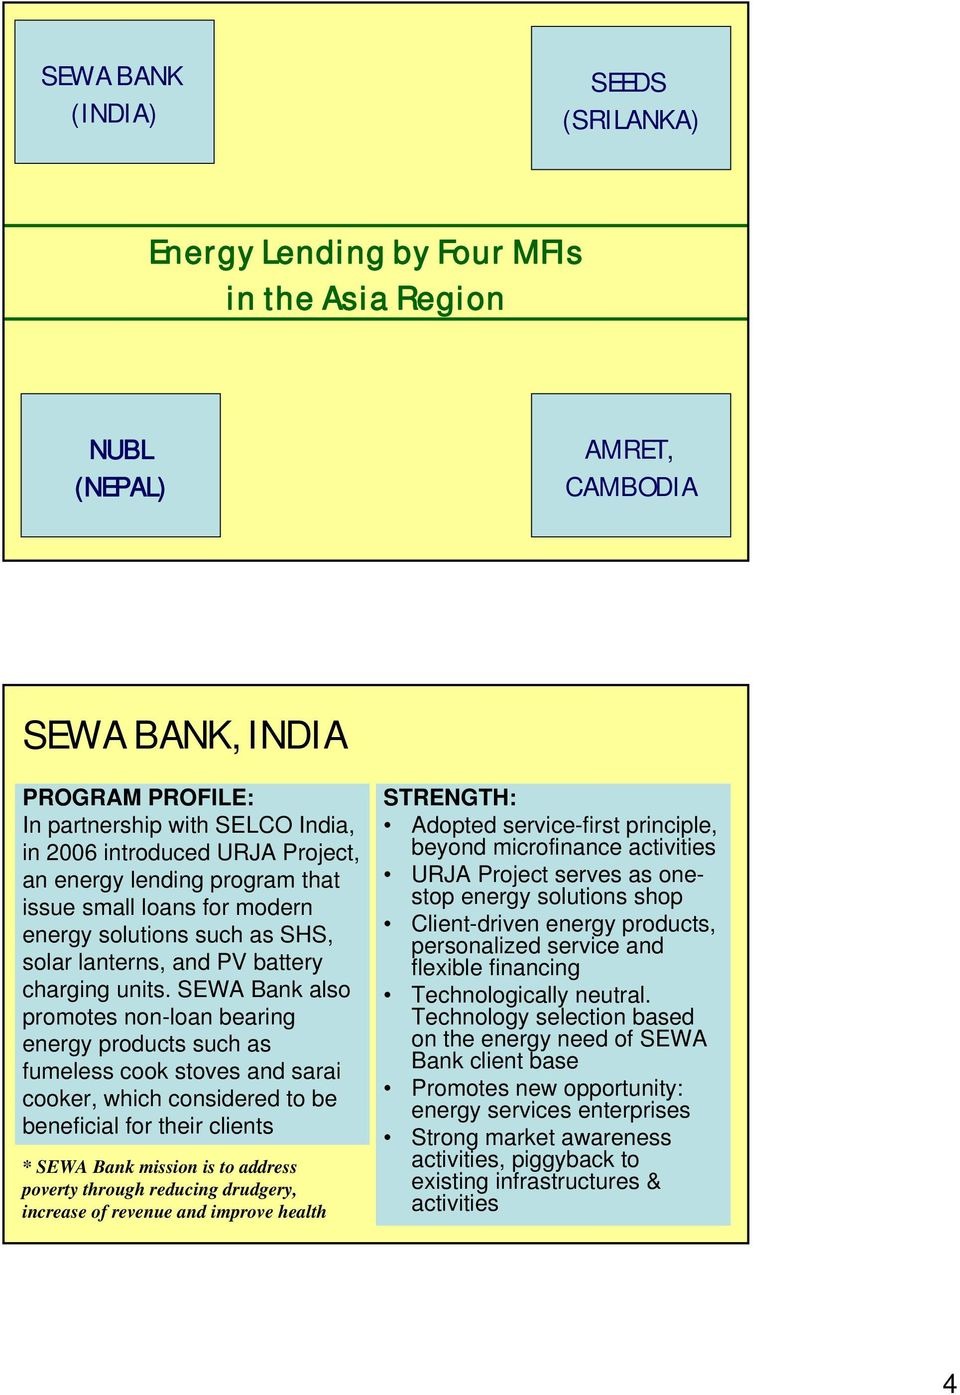 SEWA Bank also promotes non-loan bearing energy products such as fumeless cook stoves and sarai cooker, which considered to be beneficial for their clients * SEWA Bank mission is to address poverty